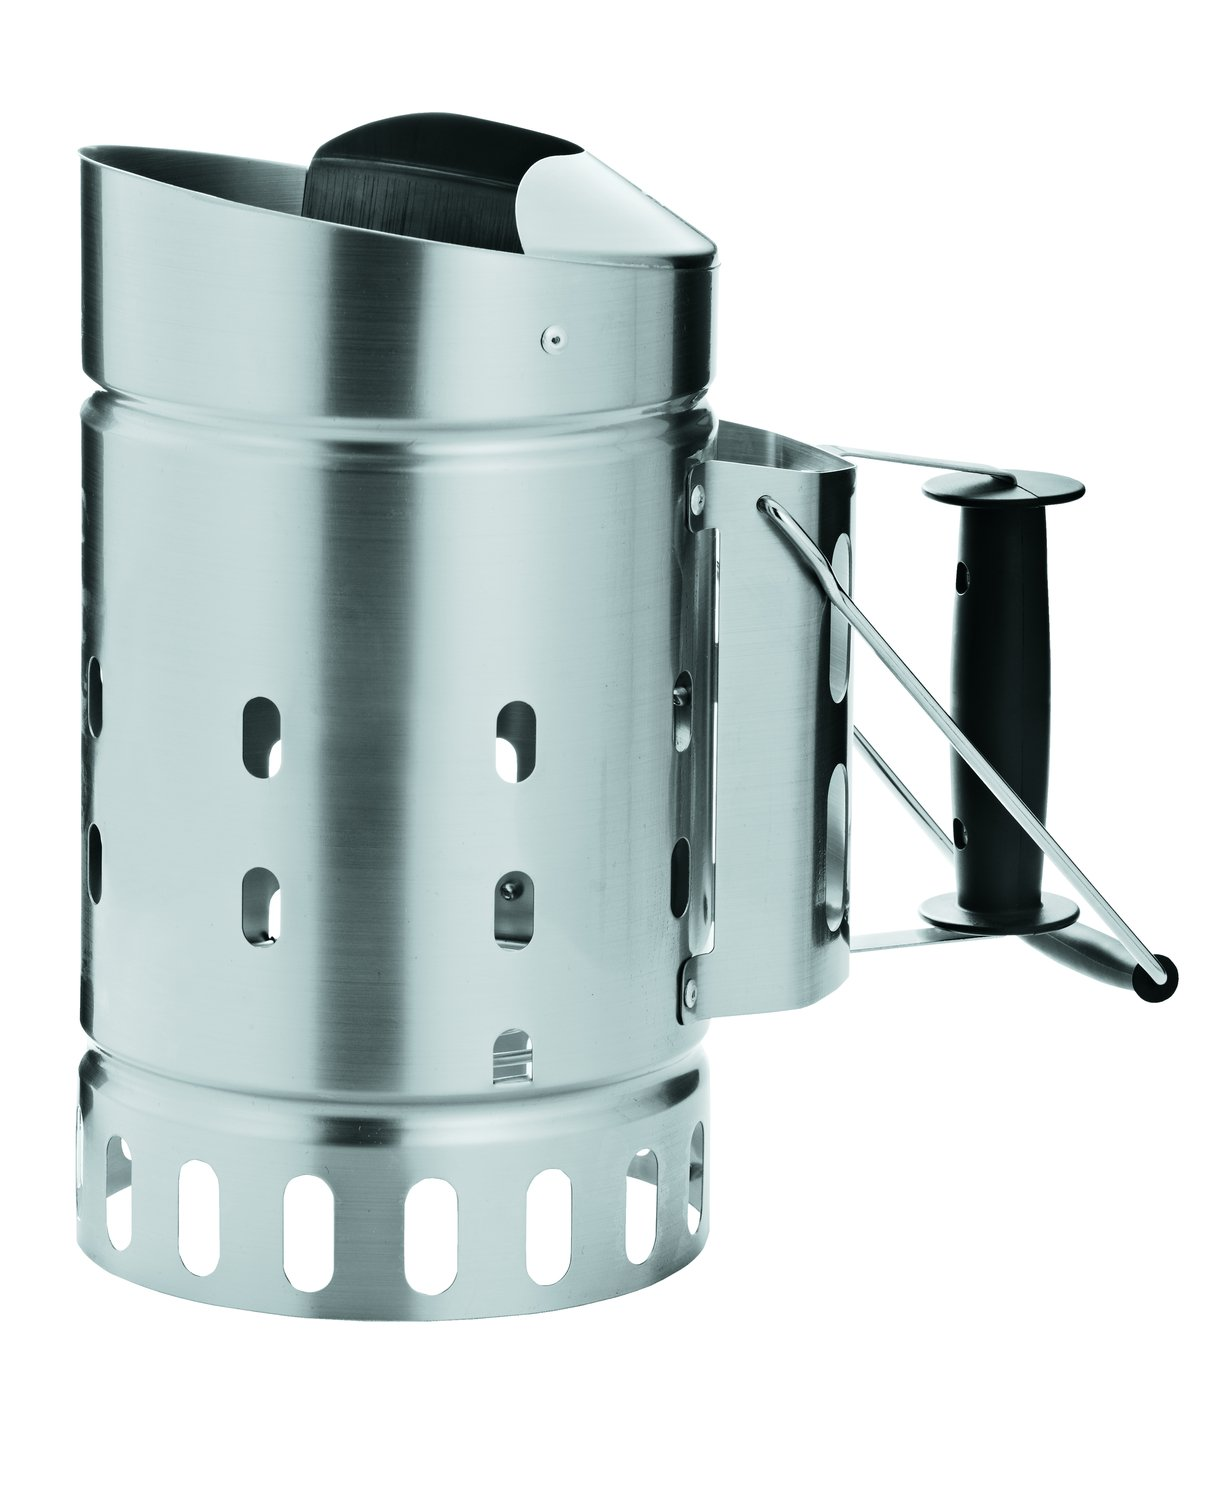 Rosle 25039 Stainless Steel Charcoal Starter Chimney, Silver by Rosle